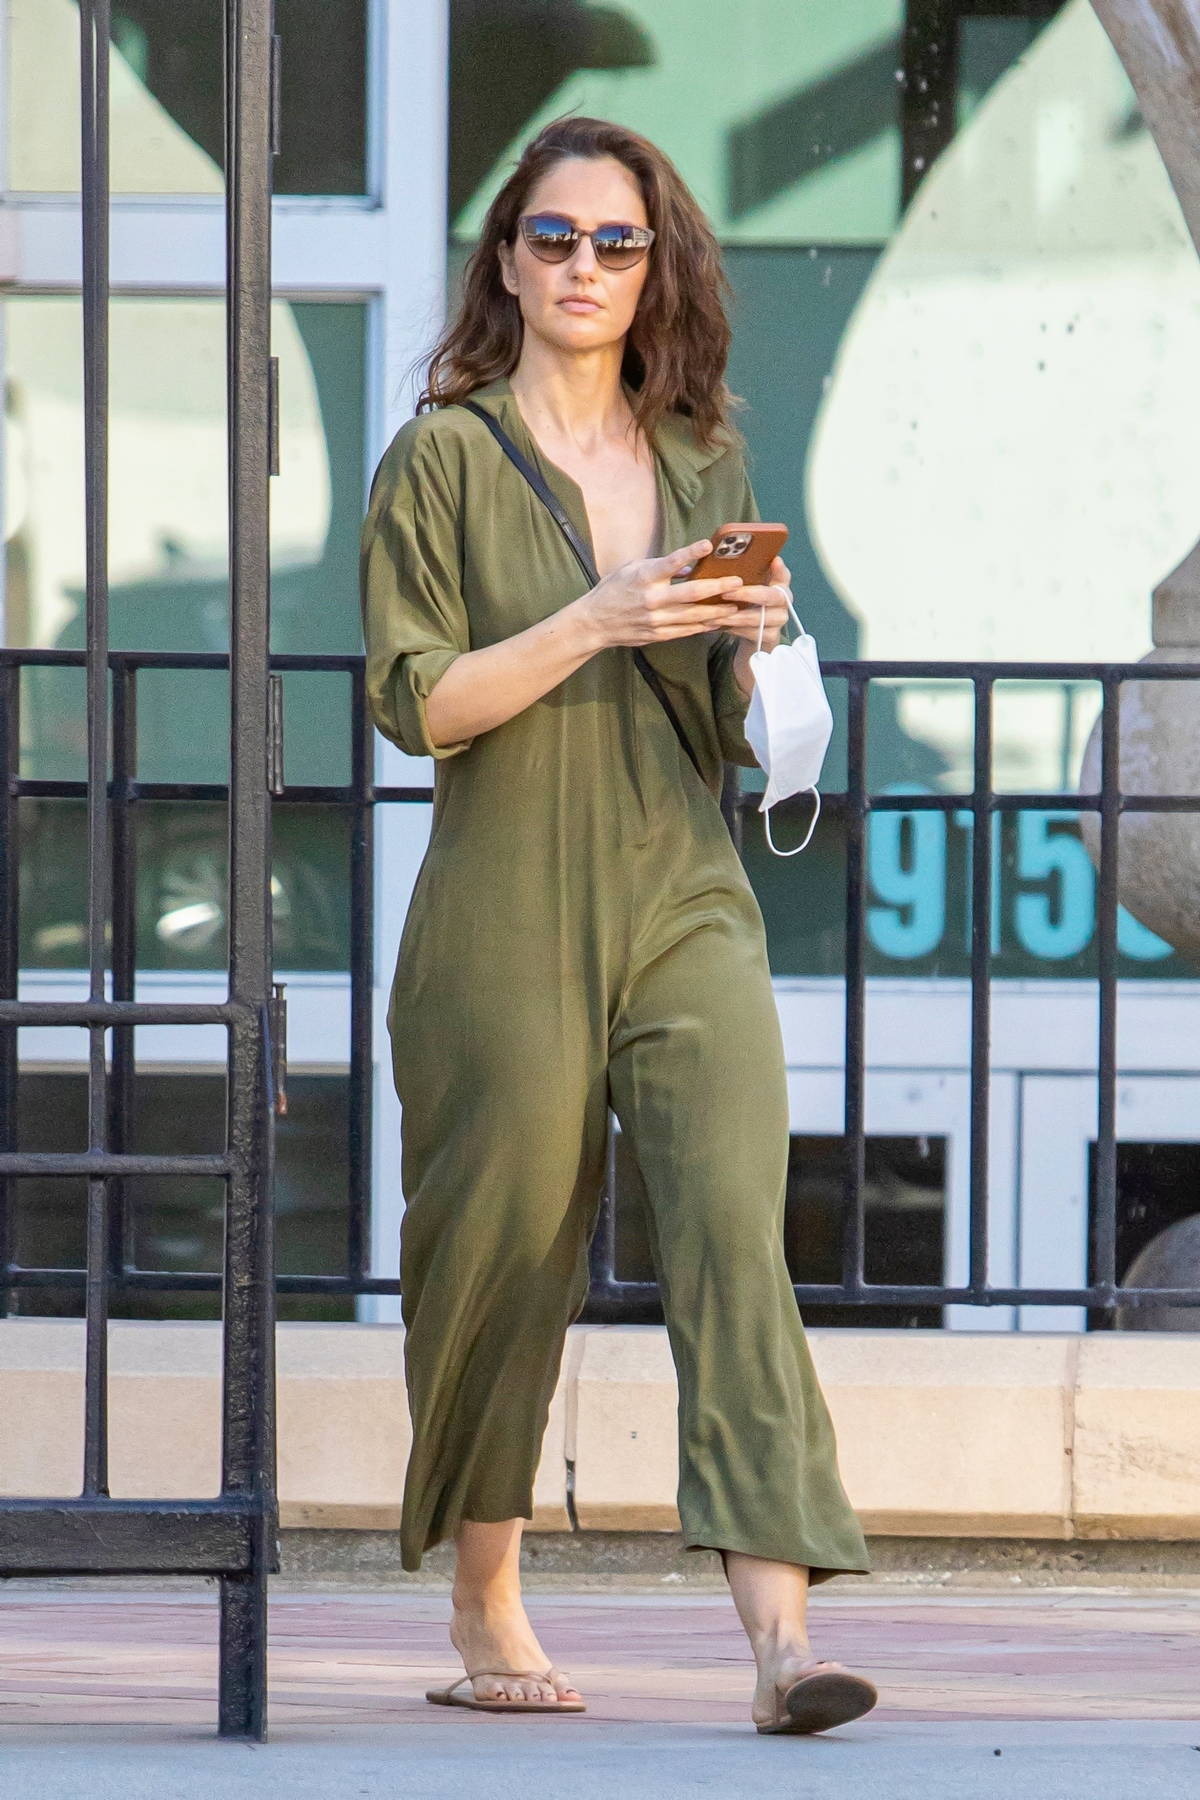 Minka Kelly steps out after boyfriend Trevor Noah purchased a $27.5 Million Bel-Air home in Los Angeles